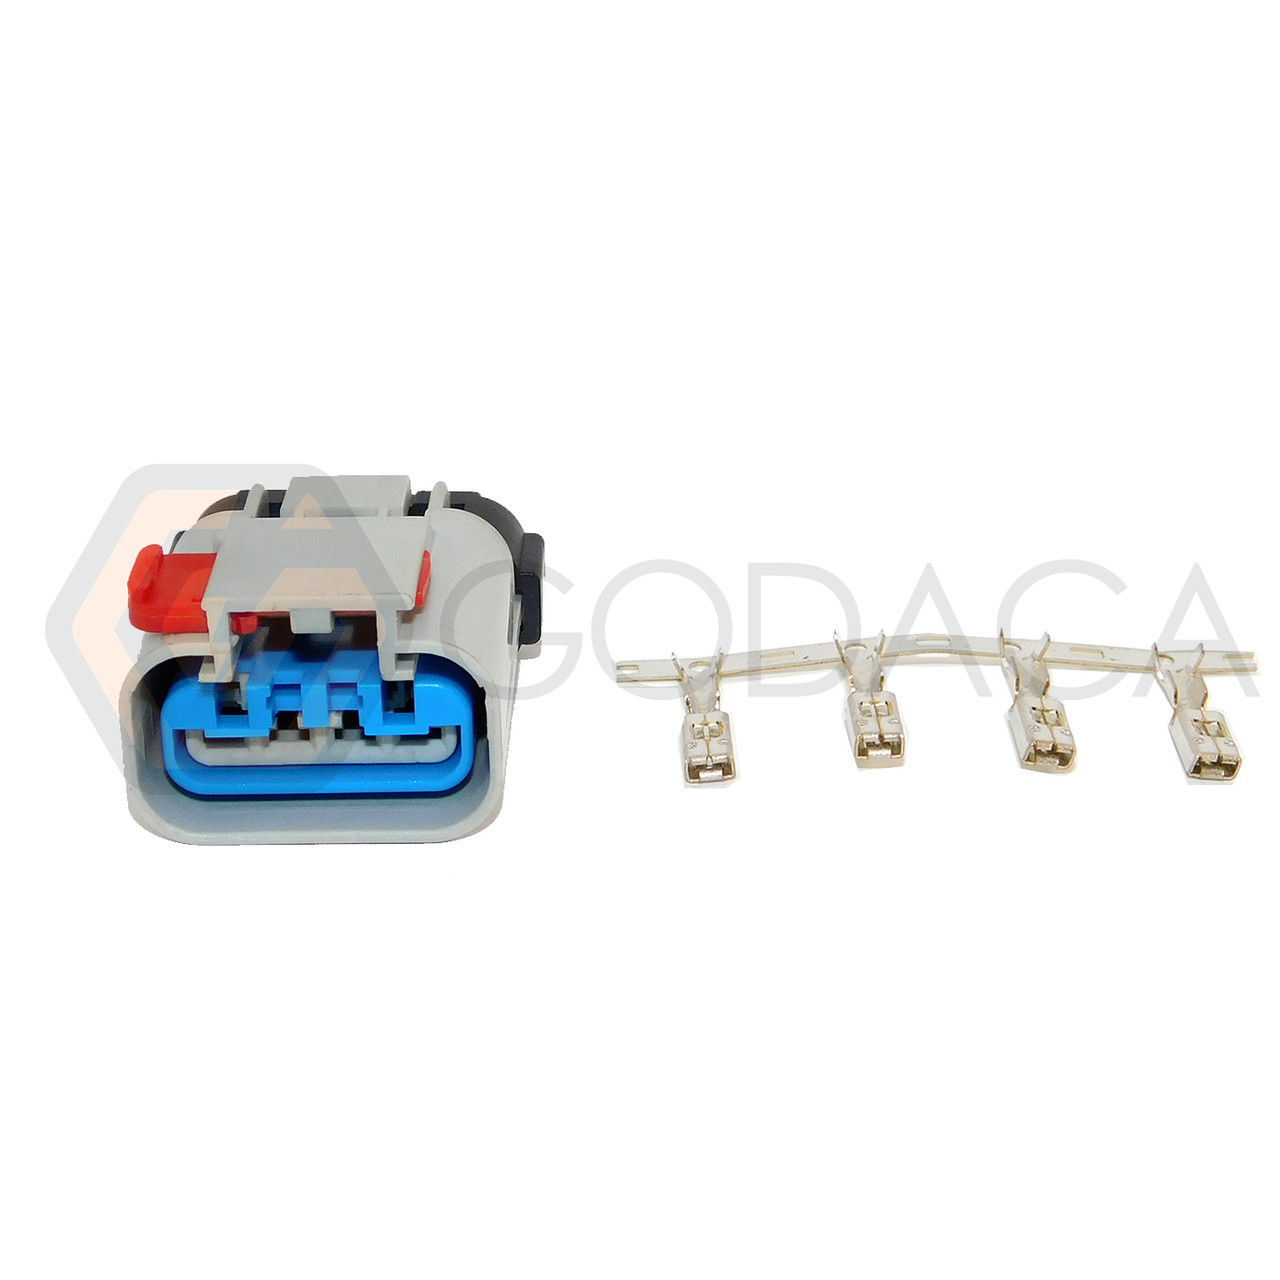 small resolution of 1x connector 4 way 4 pin for dodge fuel pump sender pt1402 w out wire godaca llc